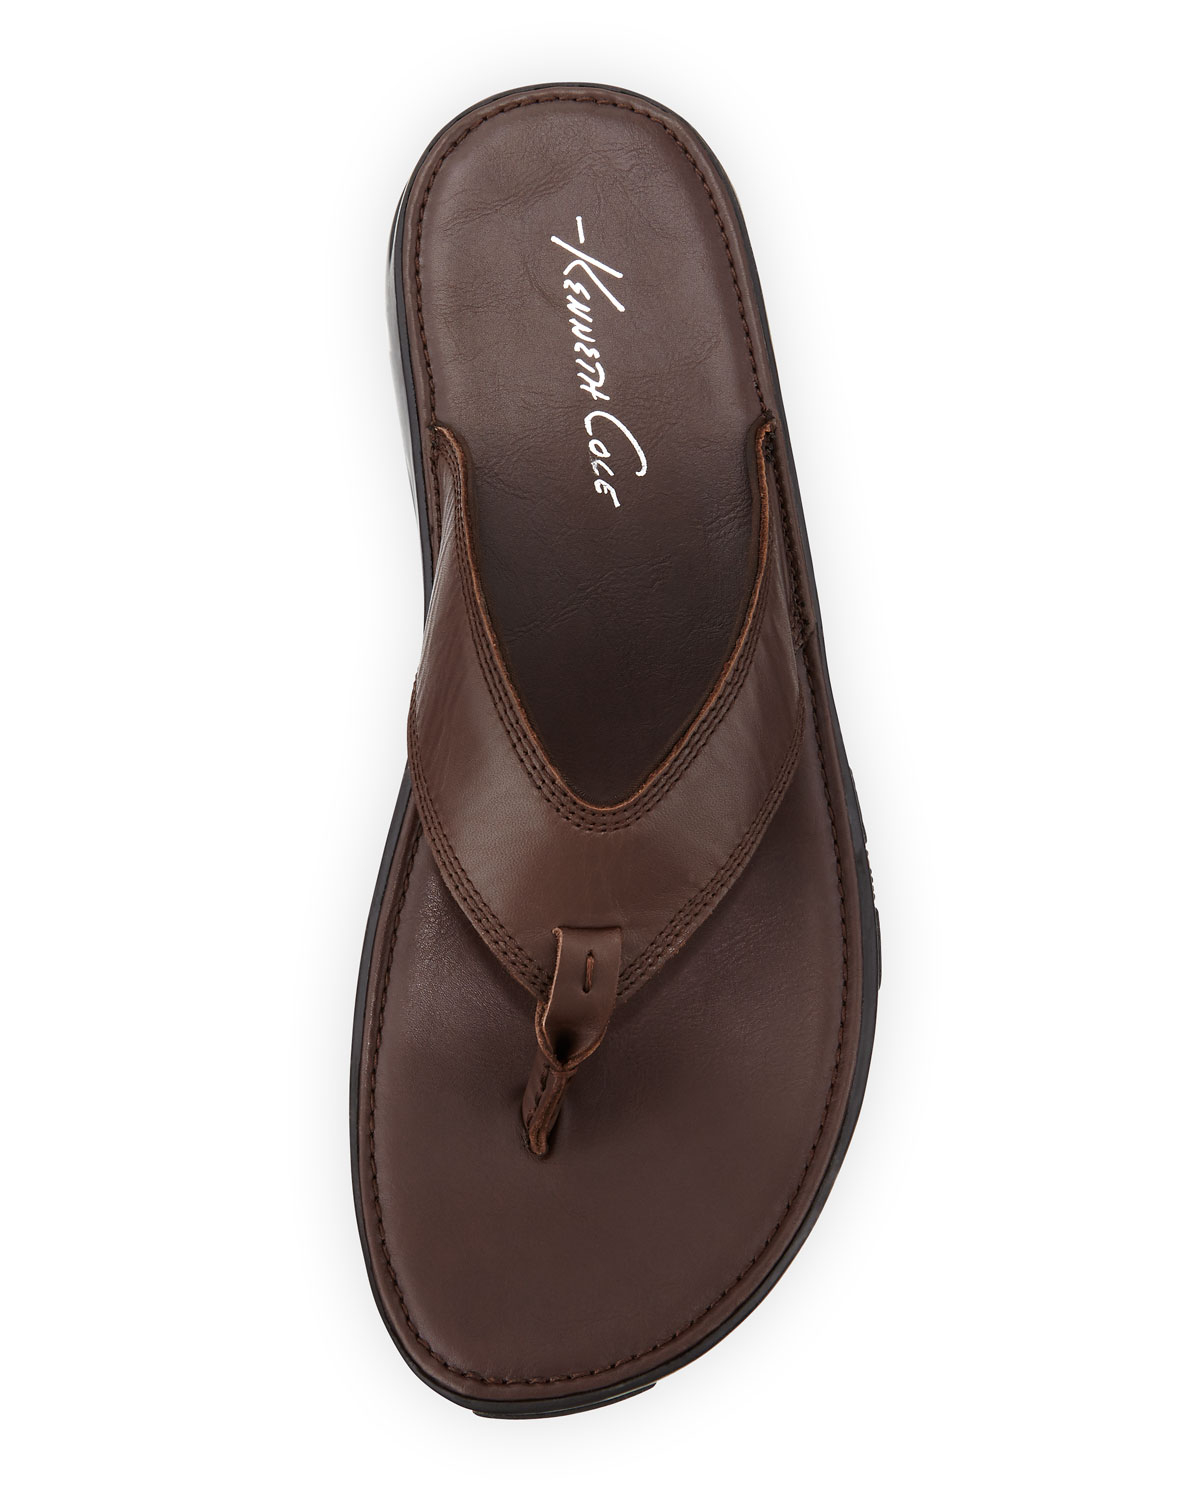 72e884968 Lyst - Kenneth Cole Get-in-shape Leather Thong Sandal in Brown for Men